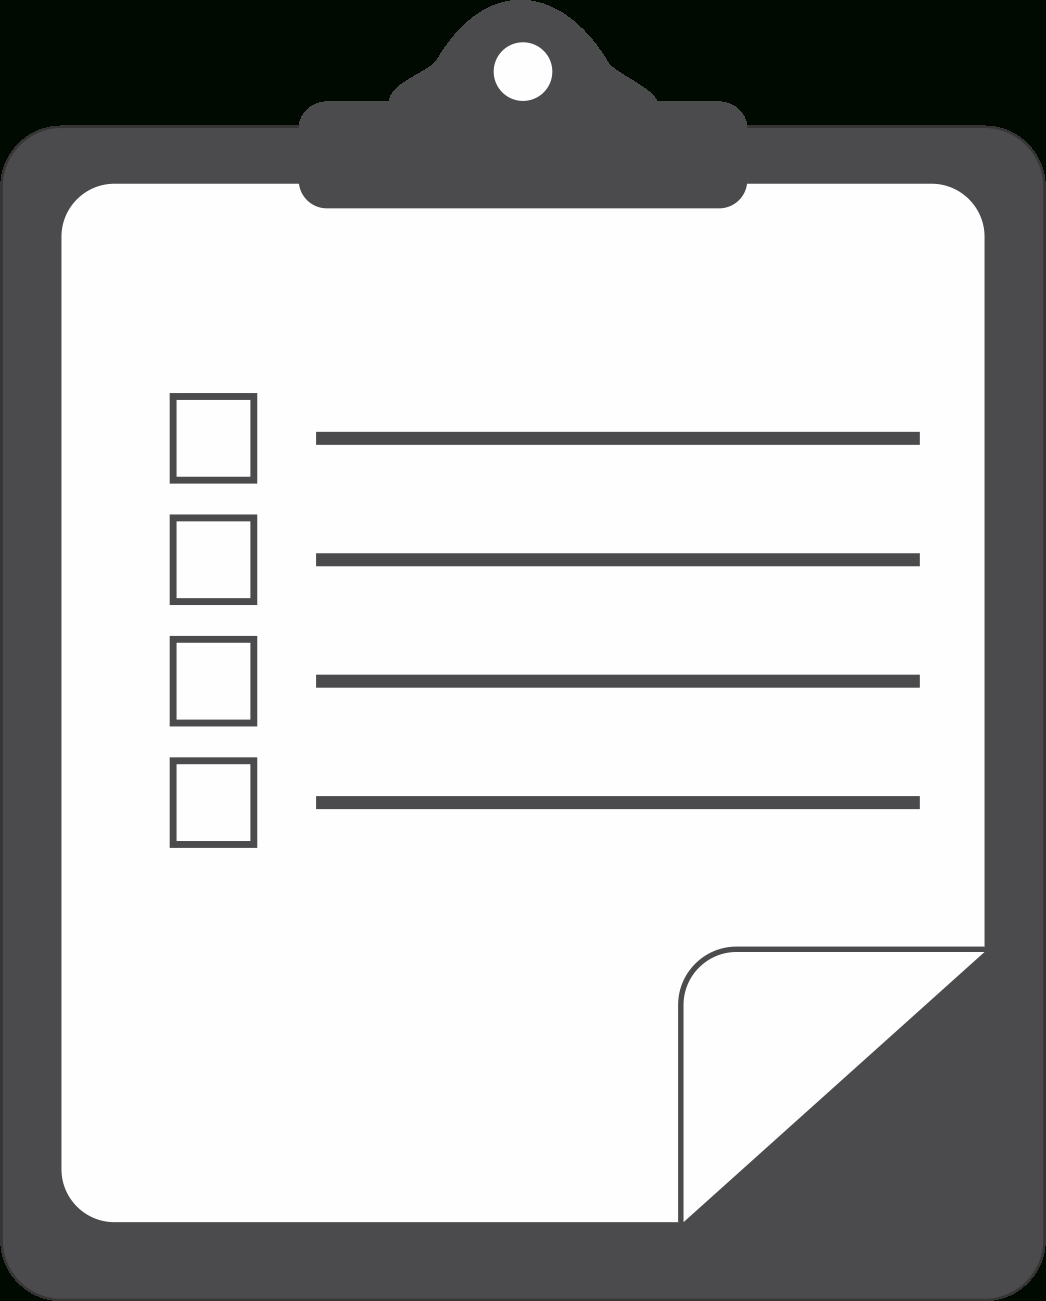 Checklist Clipart Black And White - Clip Art Library throughout Blank Checklist Png 19051